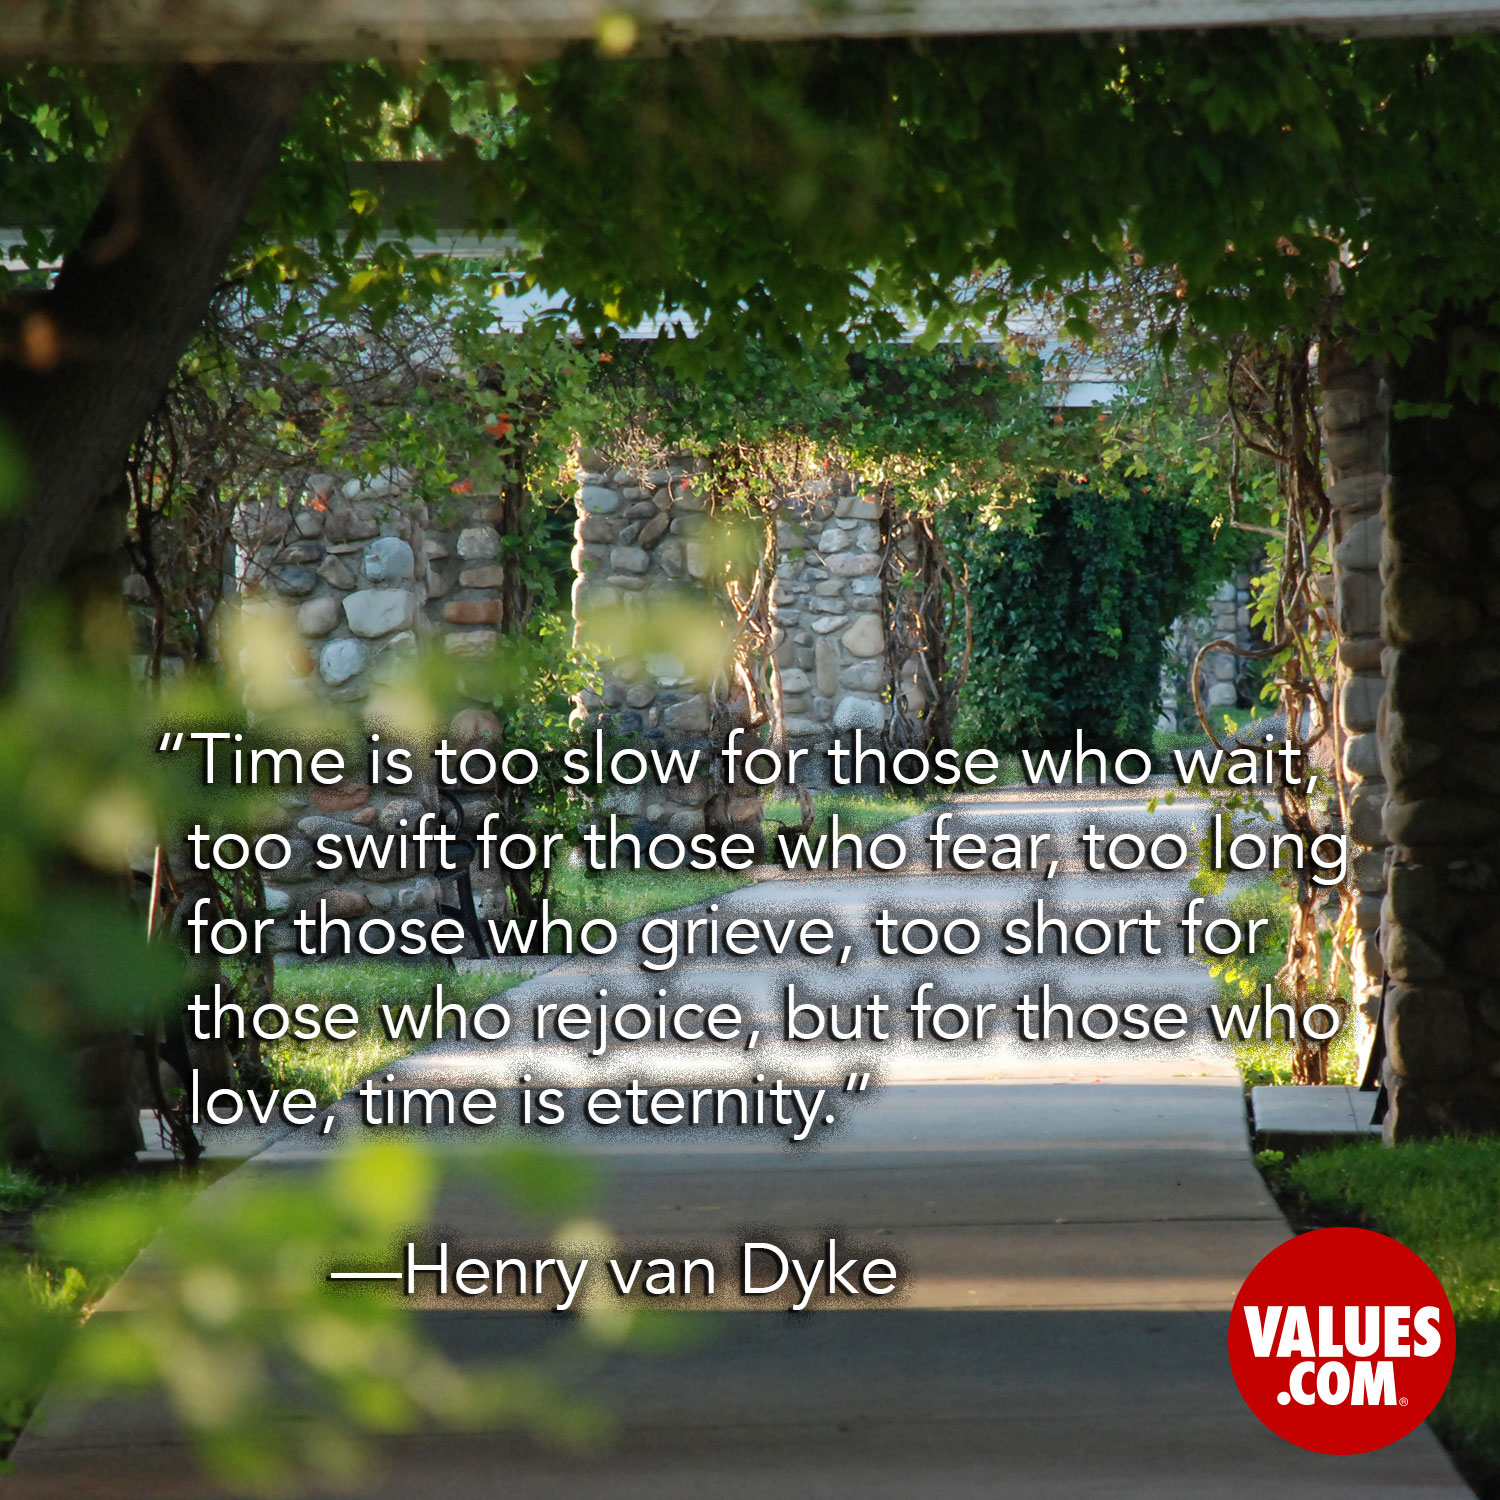 Time is too slow for those who wait, too swift for those who fear, too long for those who grieve, too short for those who rejoice, but for those who love, time is eternity. —Henry van Dyke